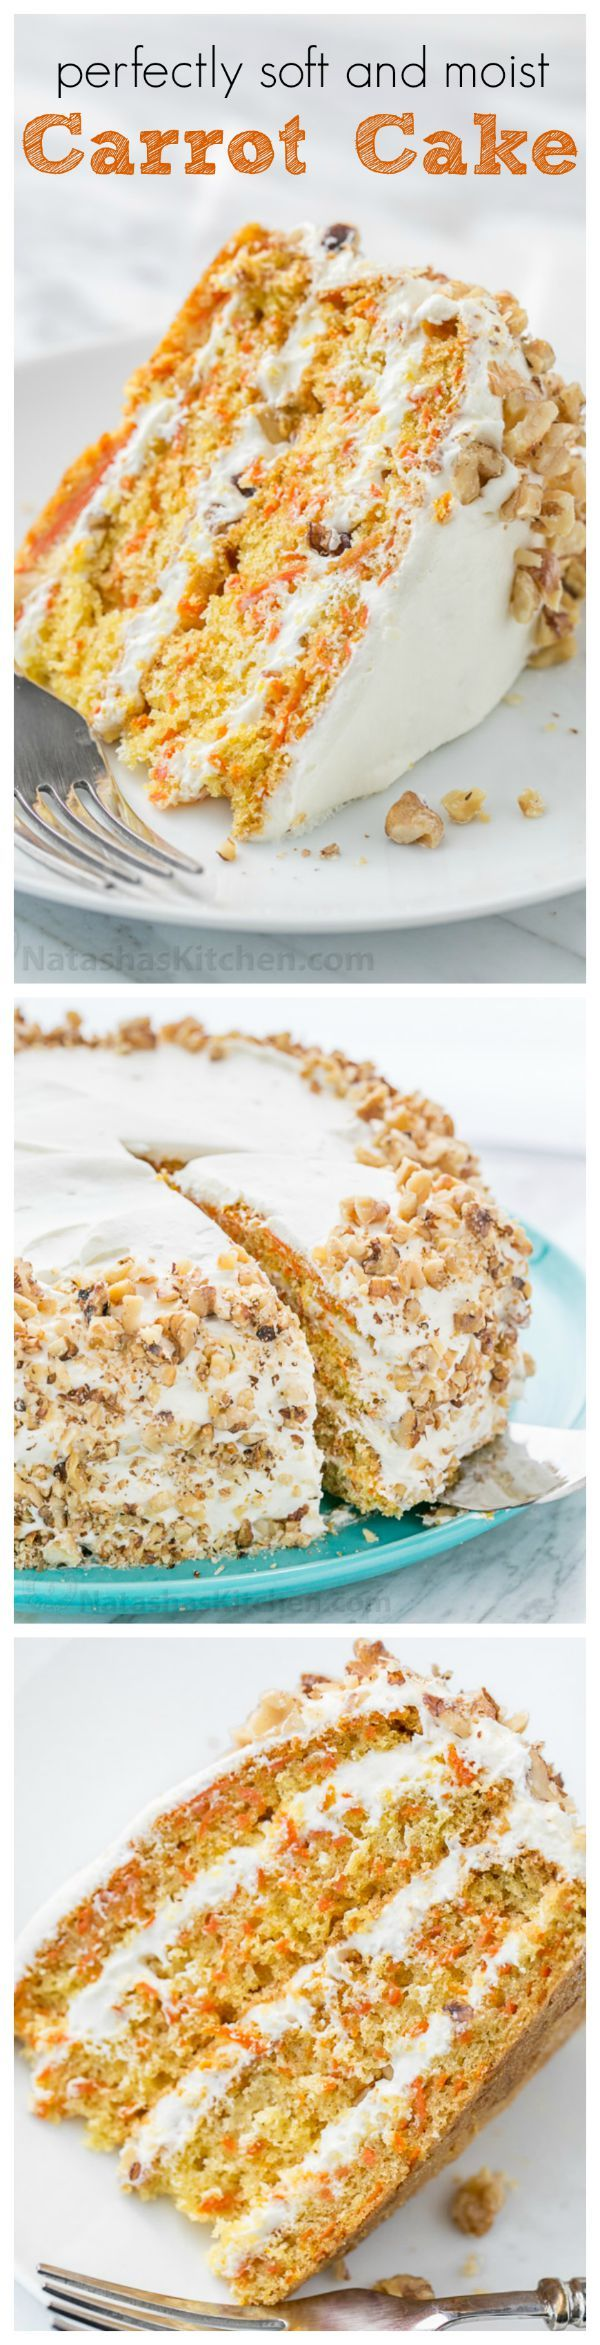 This Classic Carrot Cake recipe has been handed down through generations. This carrot cake is soft, moist, marshmallow-like frosting and not overly sweet. YUM! | natashaskitchen.com